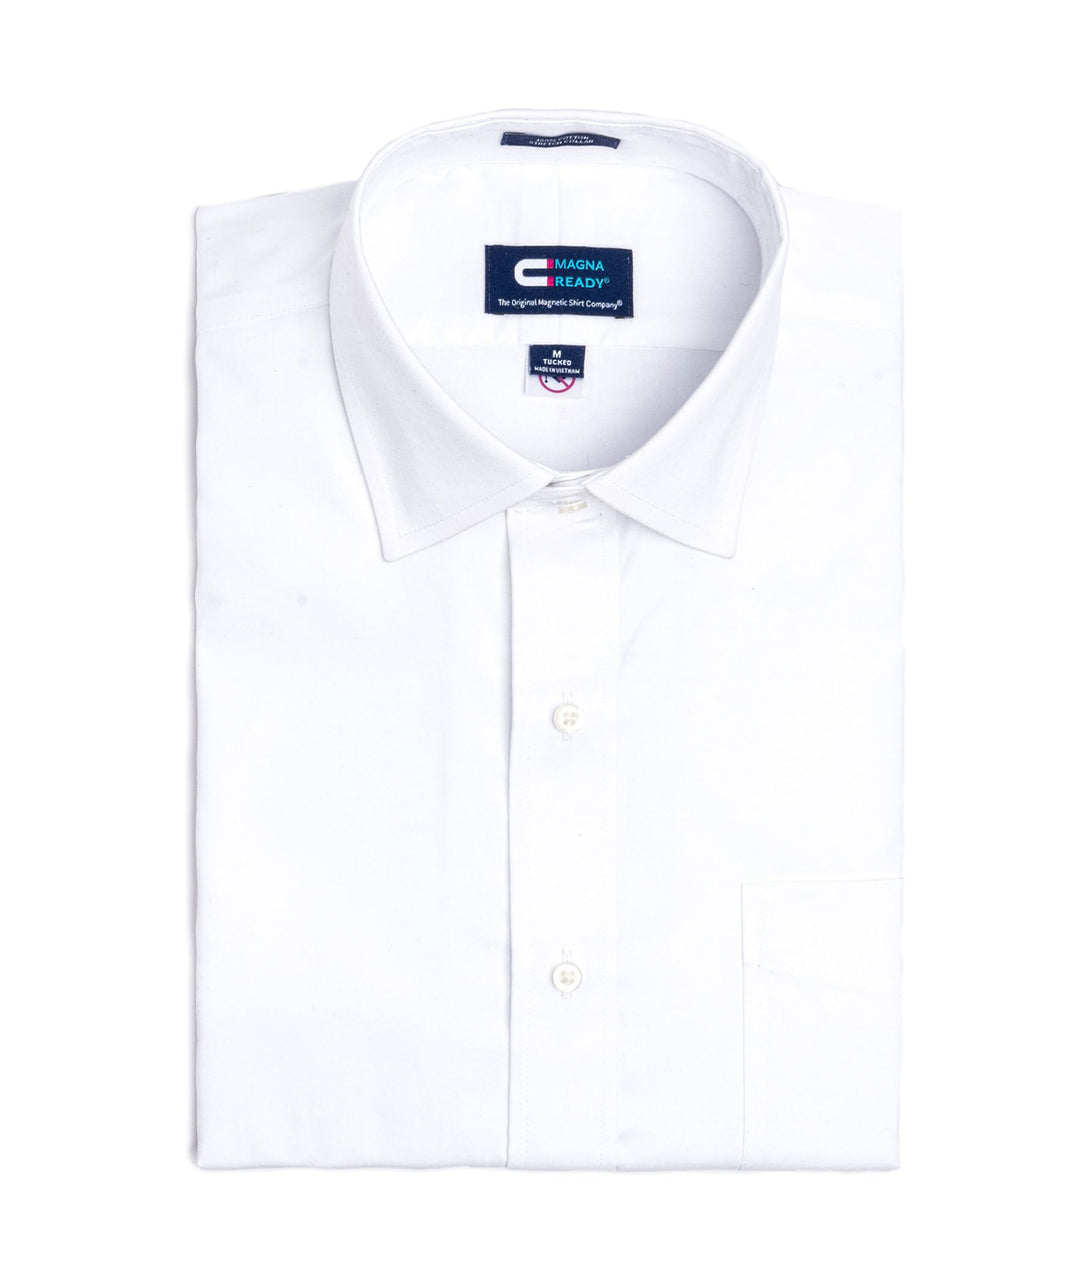 White Pinpoint Long Sleeve Dress Shirt with Magnetic Closures | JUNIPERunltd